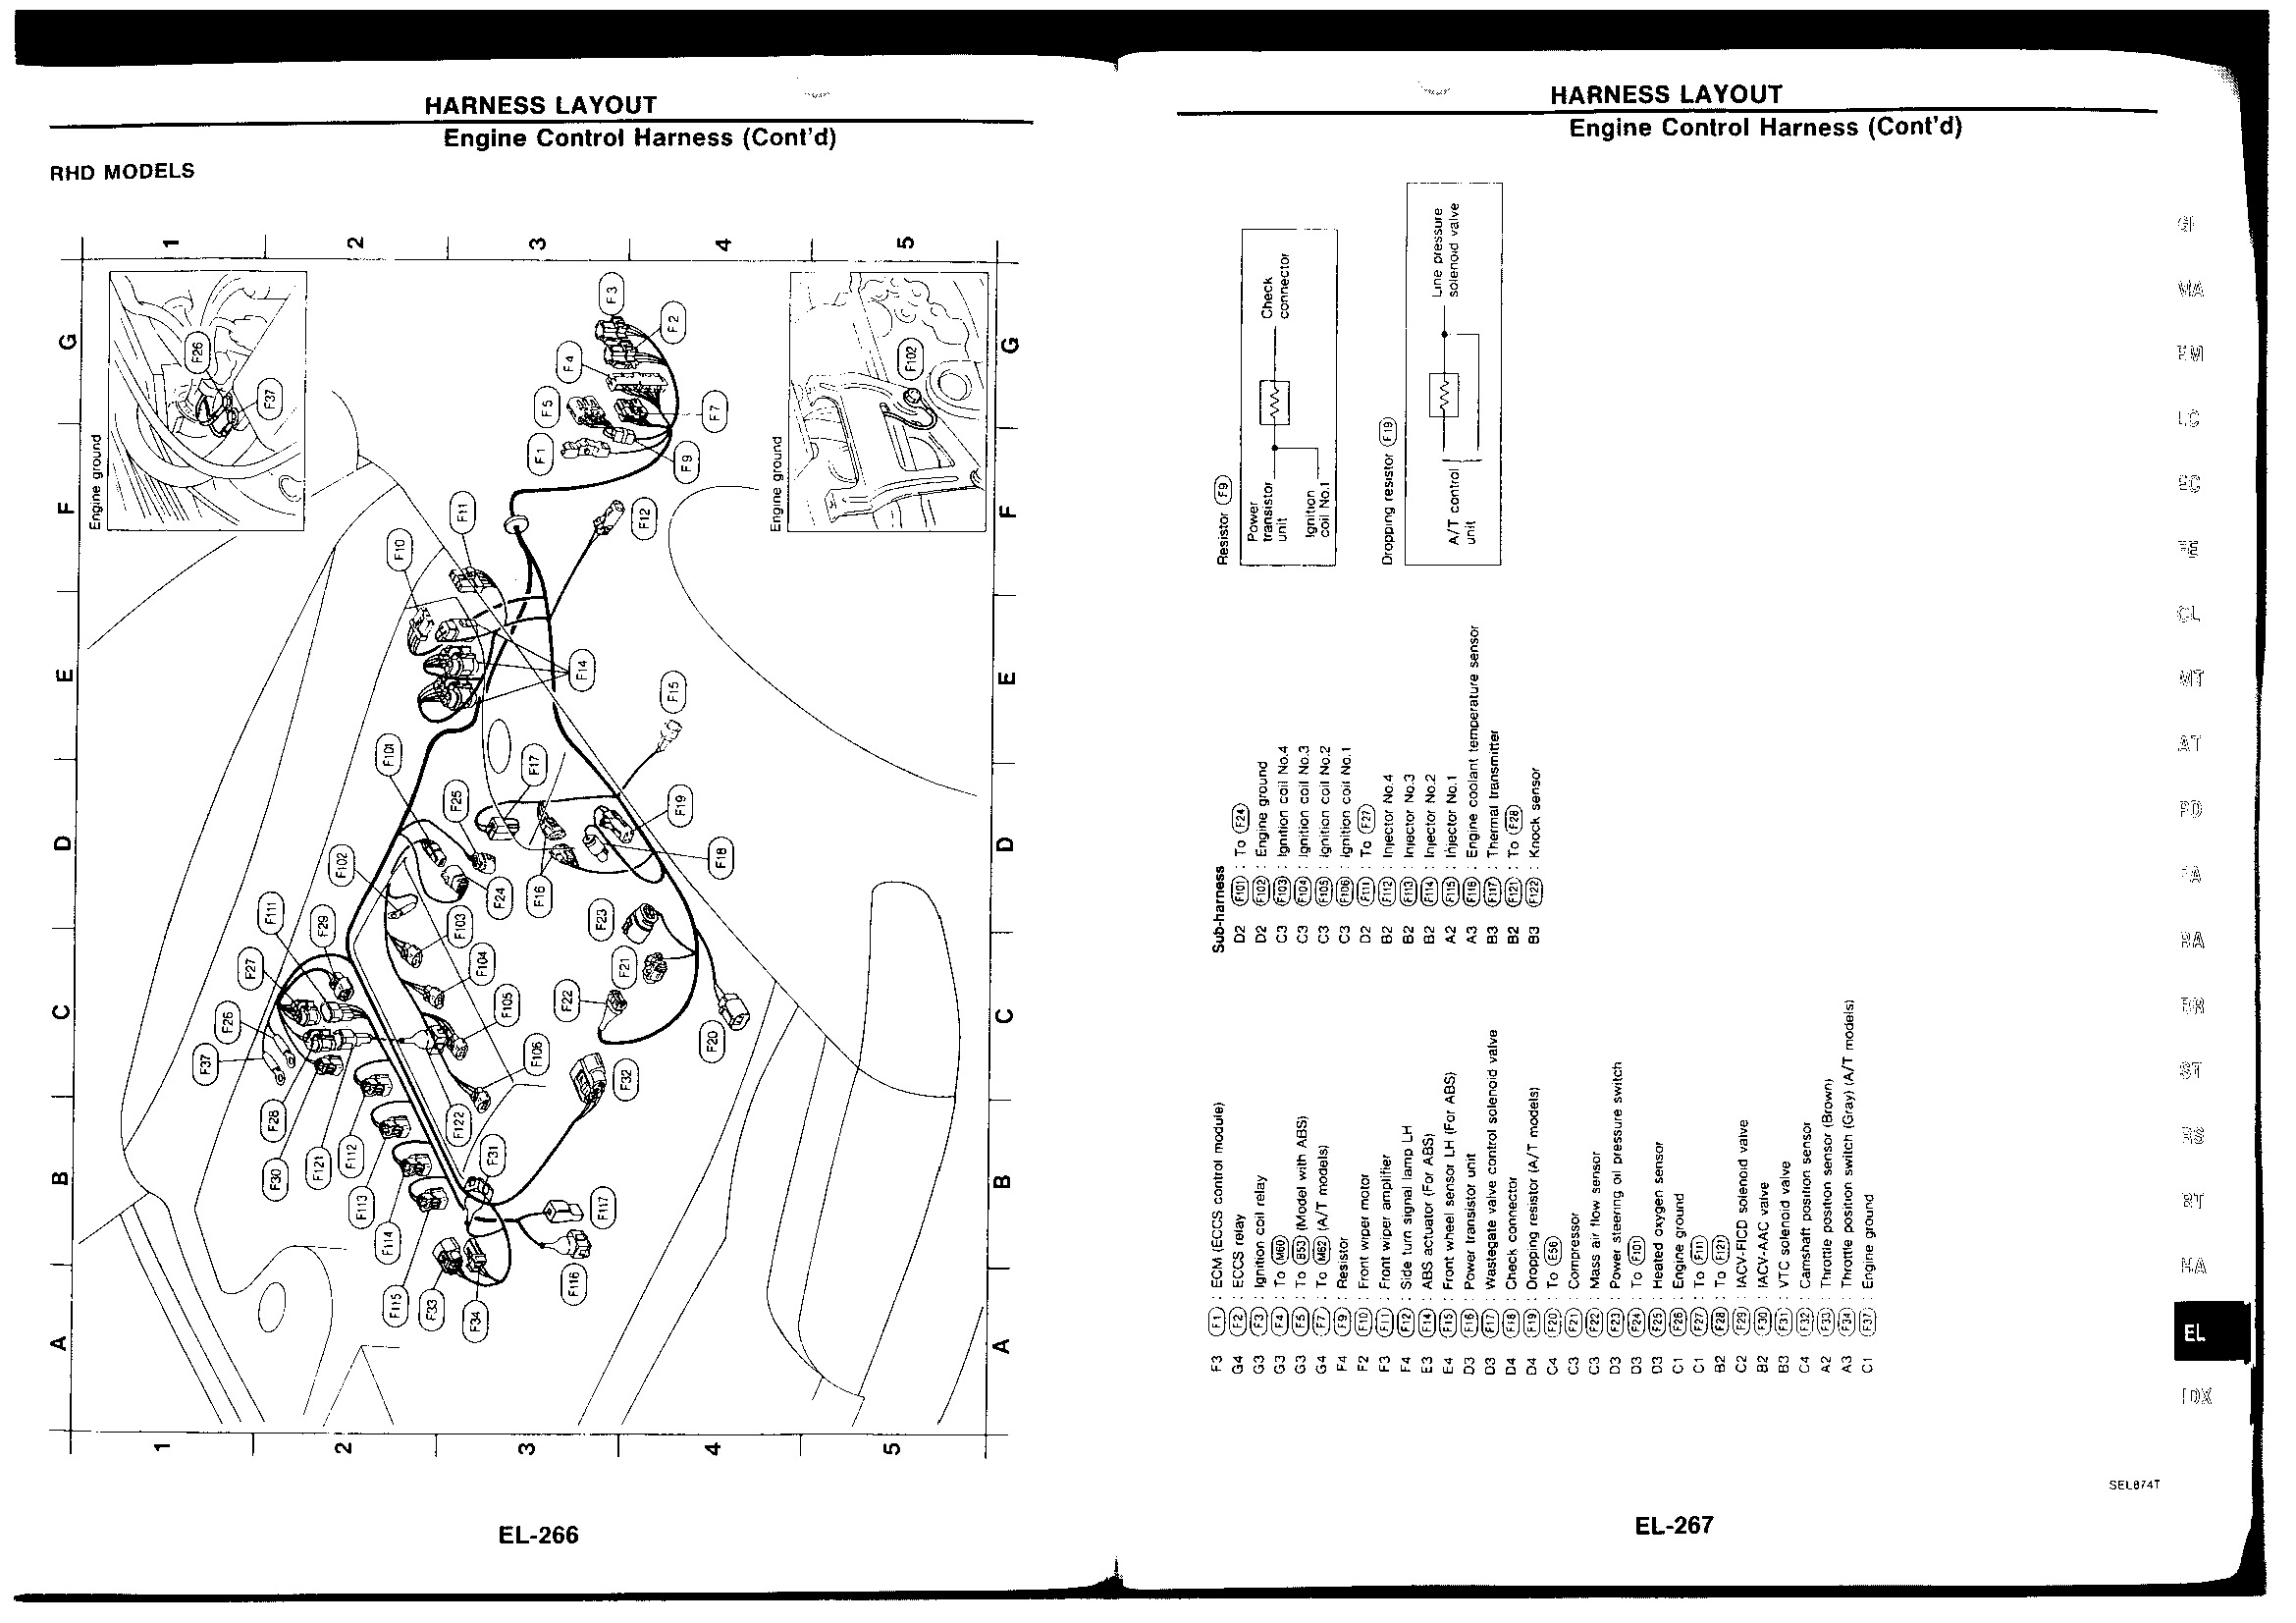 hight resolution of camstat wiring diagram for oil gandul 45 77 79 119 s14 zenki sr20det english text page 802 w